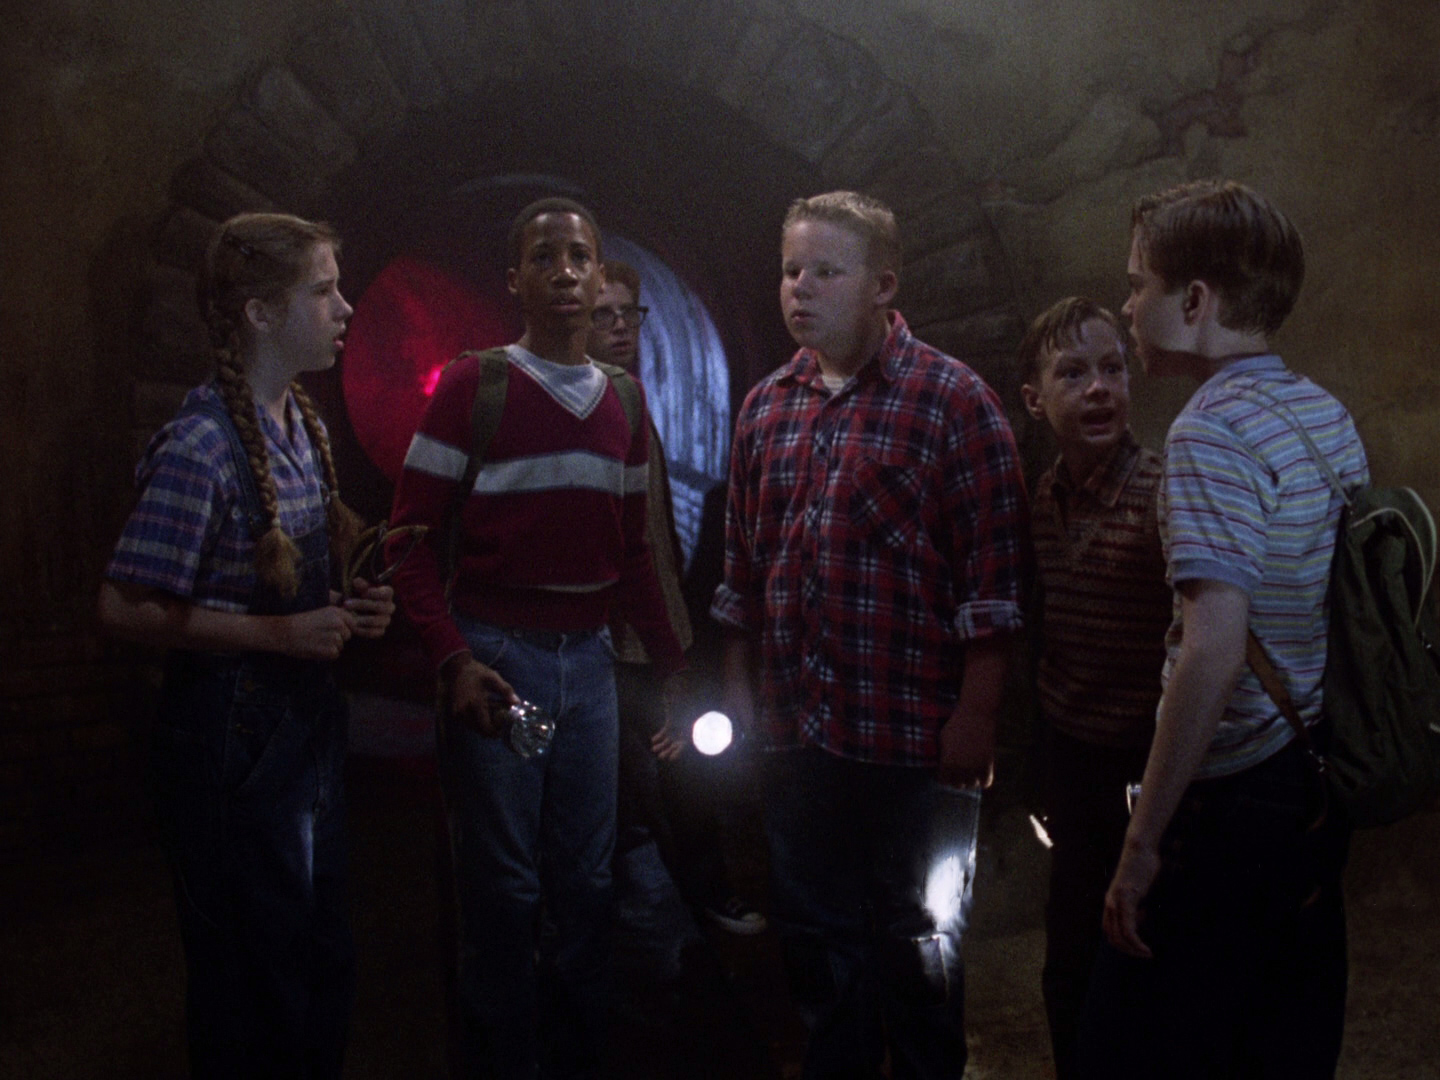 The kids - (l to r) Emily Perkins, Marlon Taylor, Seth Green, Brandon Crane, Adam Faraizl, Jonathan Brandis in It (1990)